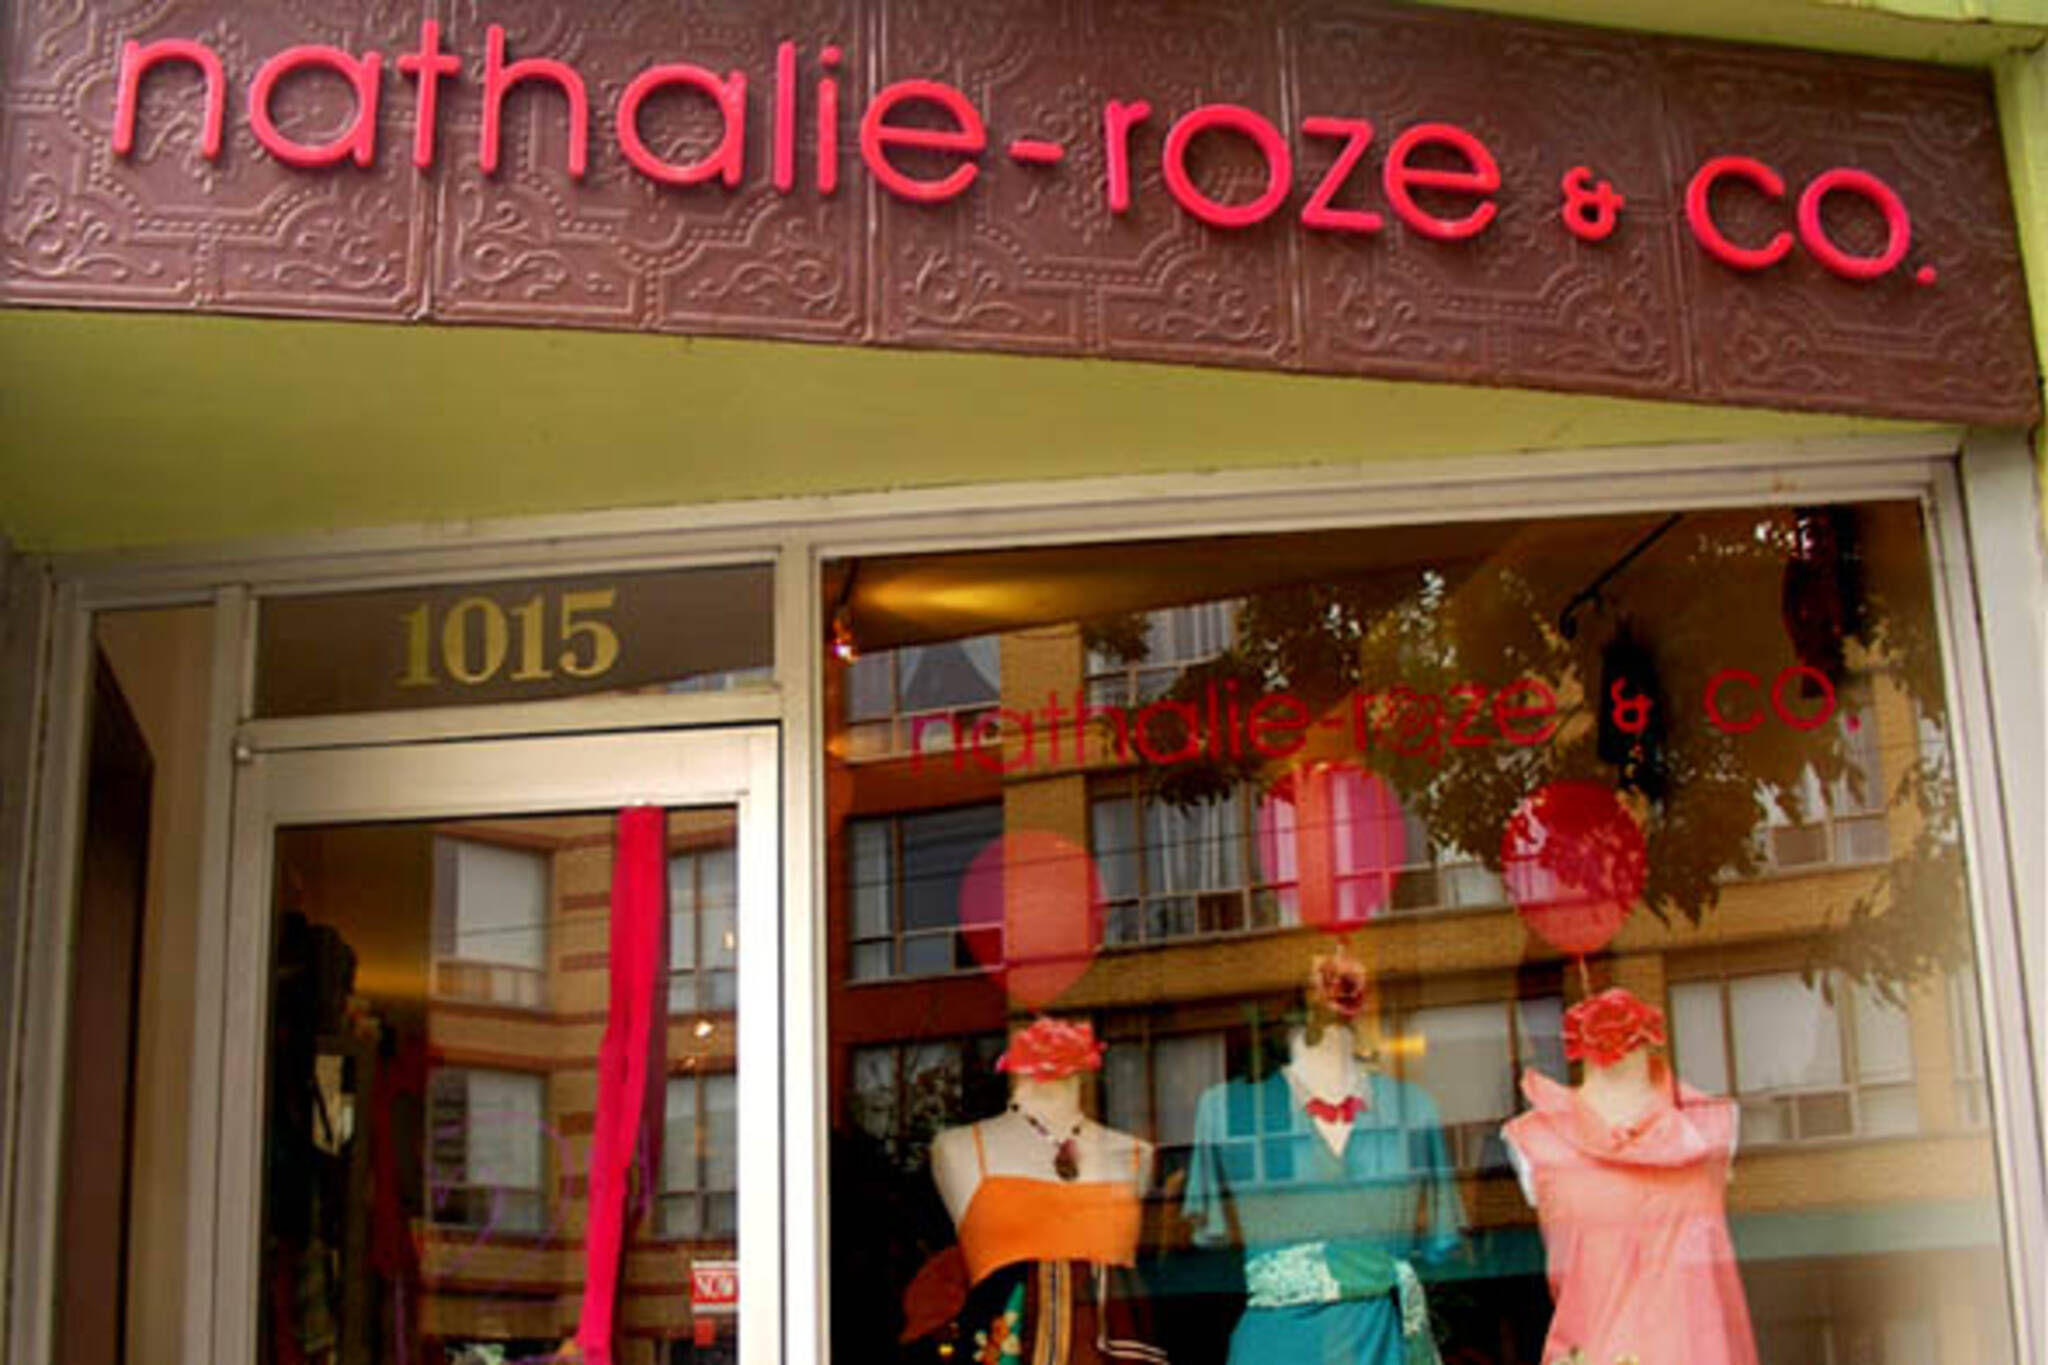 Nathalie Roze and Co